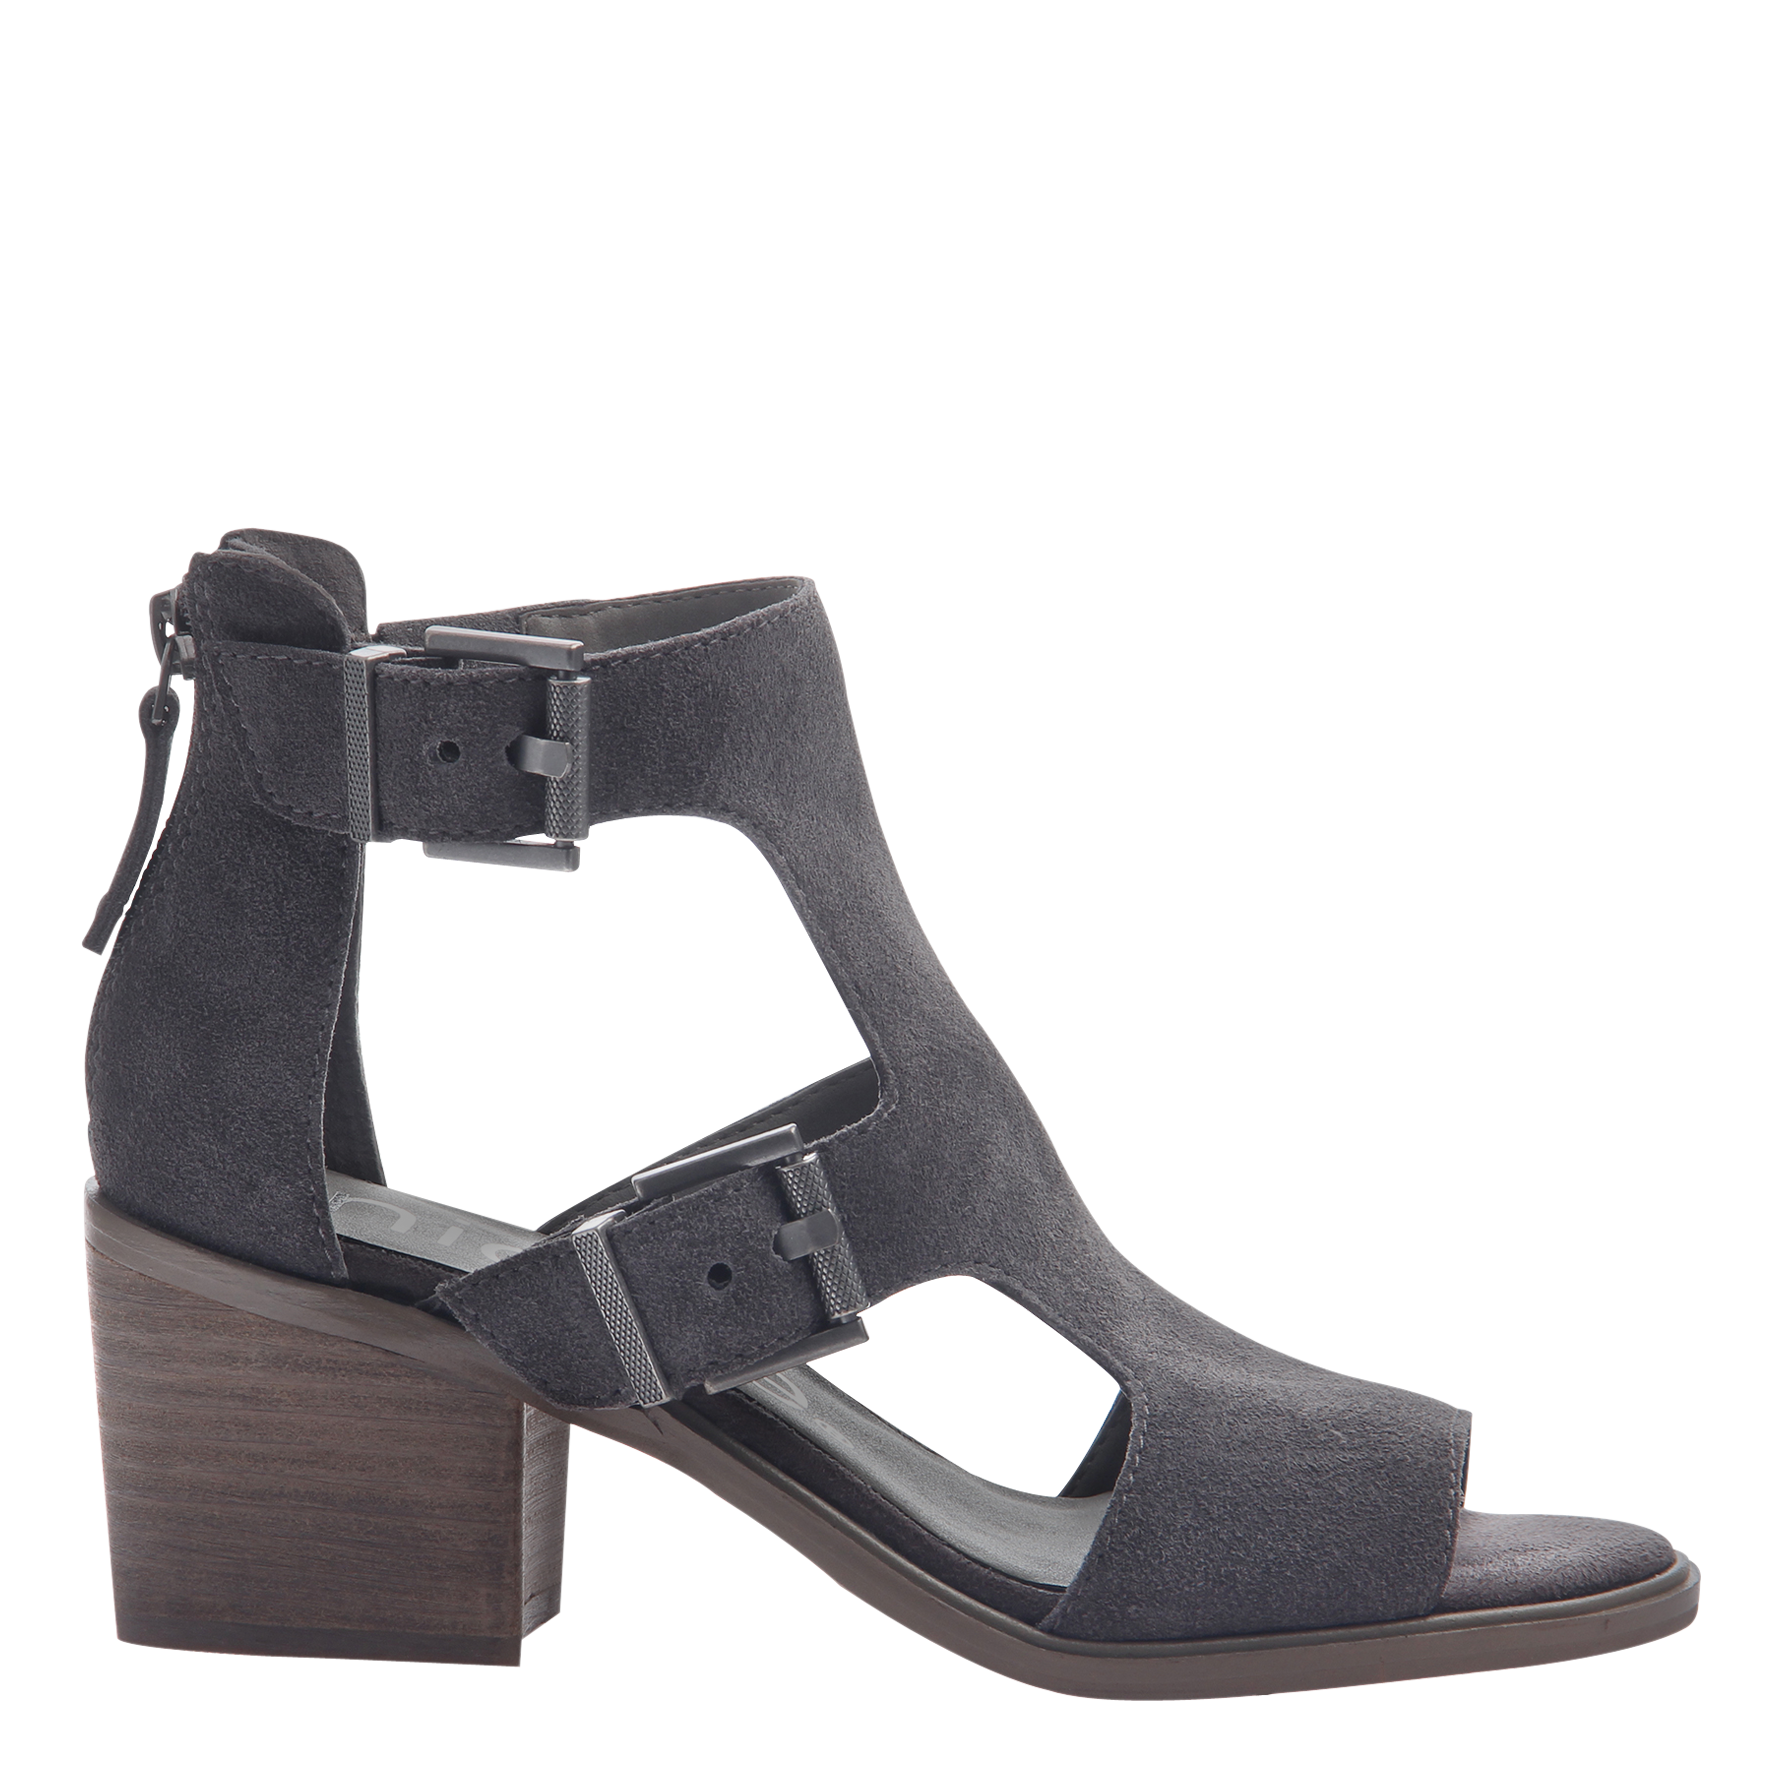 Womens heeled sandals in Jahida soft grey side view